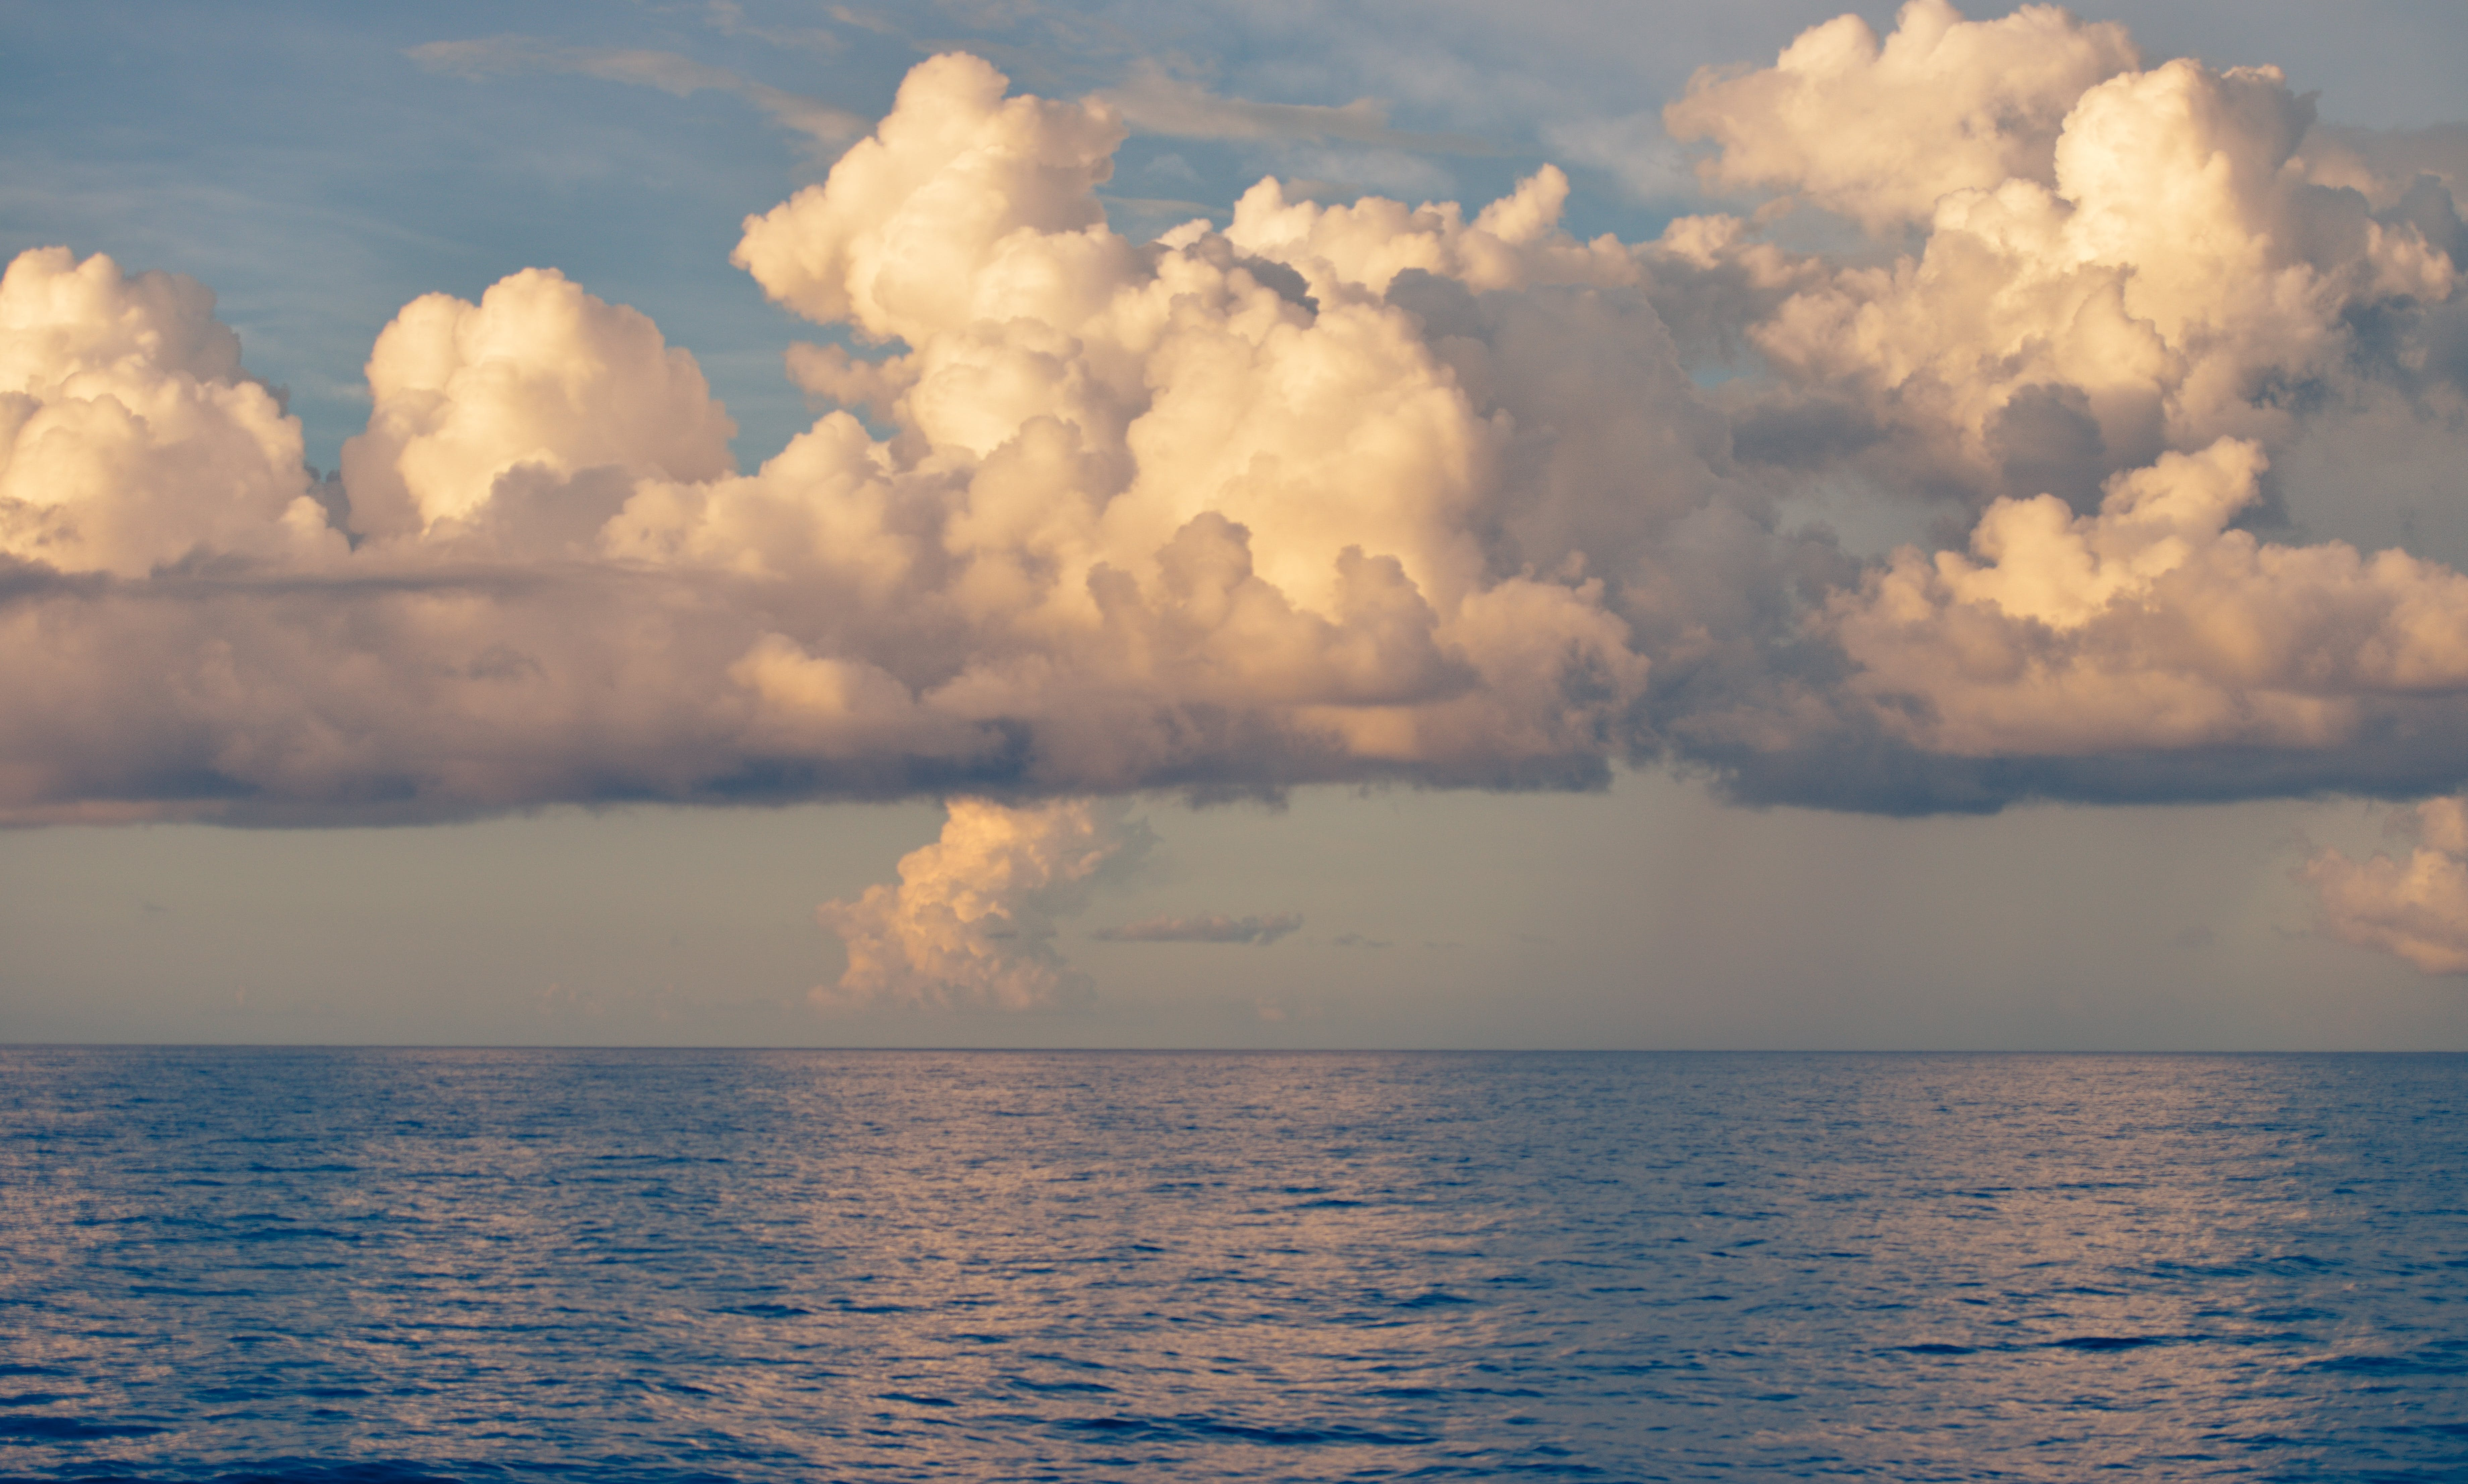 Blue Body of Water Under White Cloud